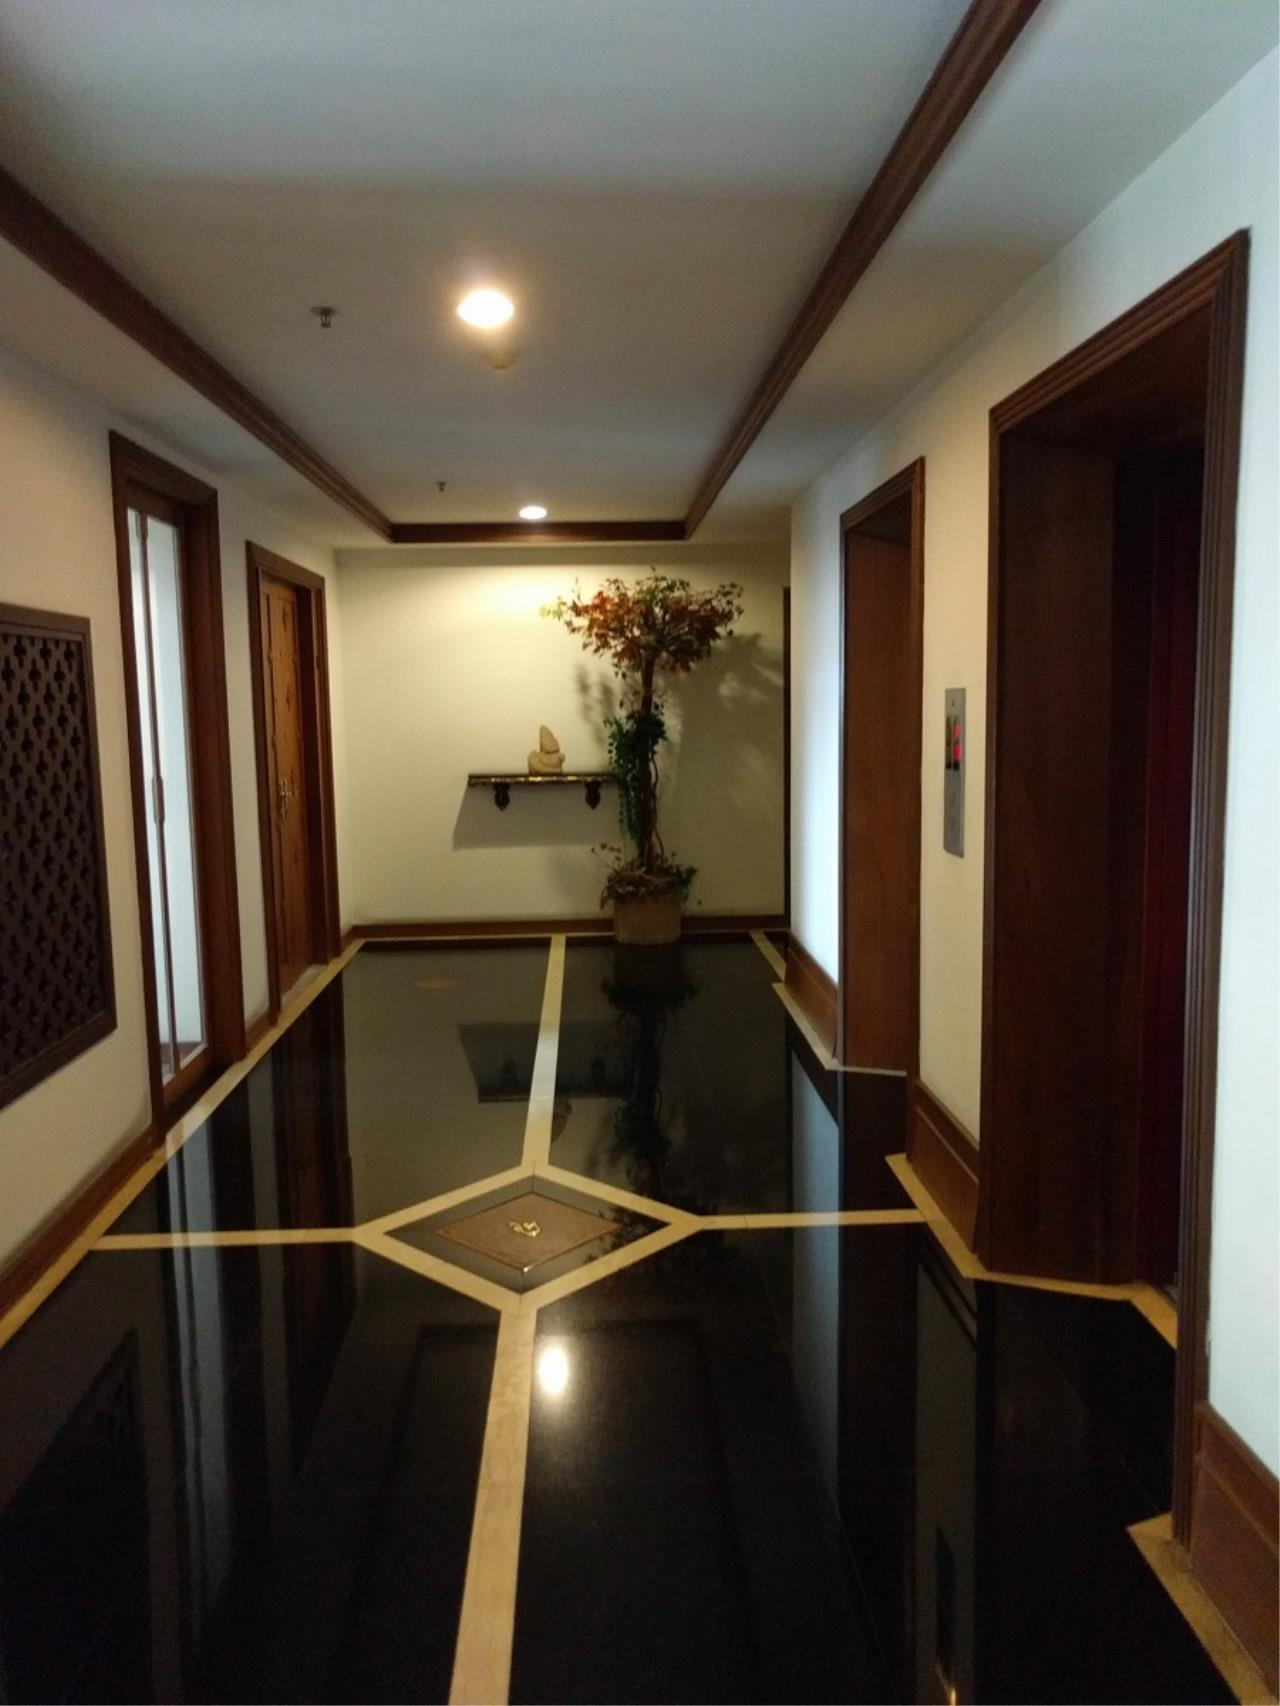 RE/MAX CondoDee Agency's Thai Elegance Luxury Condominium - Entire Building for Sale 3